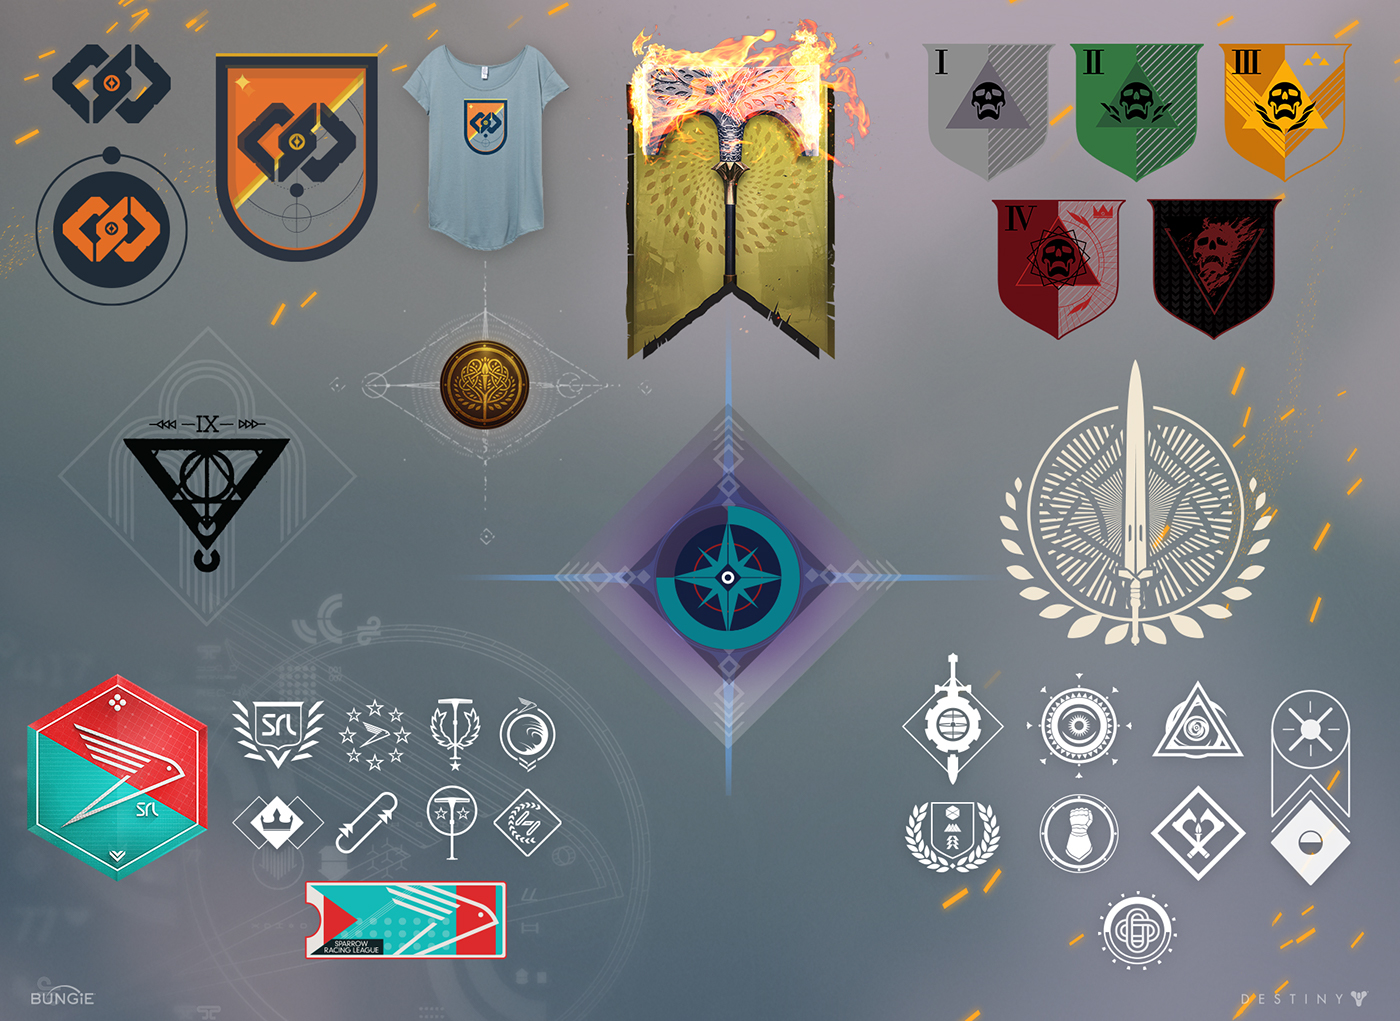 destiny Bungie activision Video Games The Taken King user interface playstation xbox visual design iconography